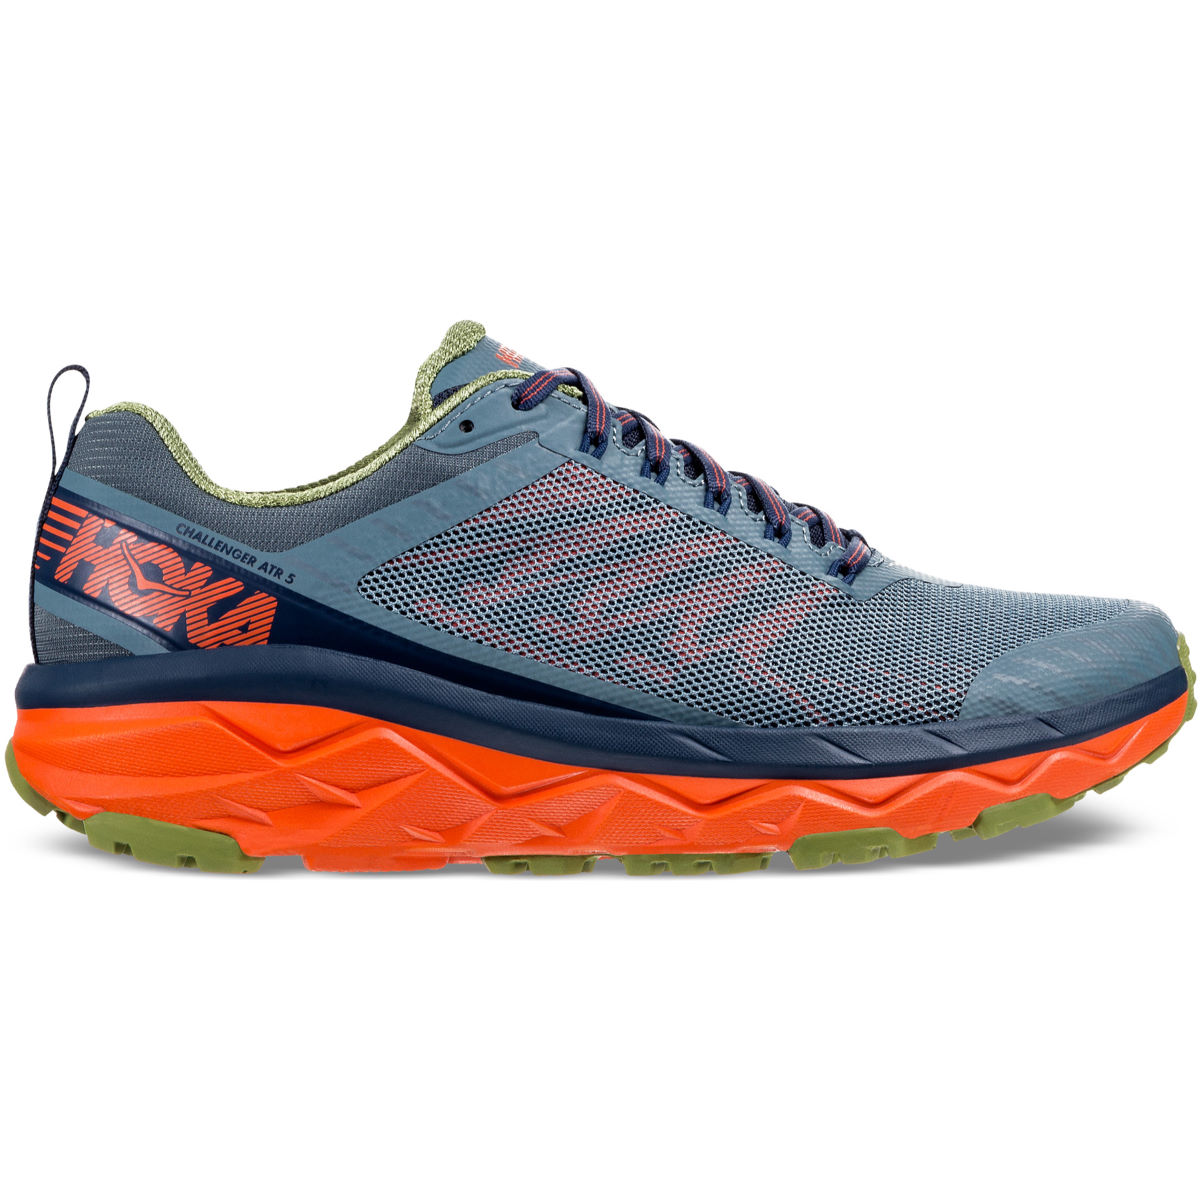 Hoka One One Hoka One One Challenger ATR 5 Wide Trail Running Shoes   Trail Shoes